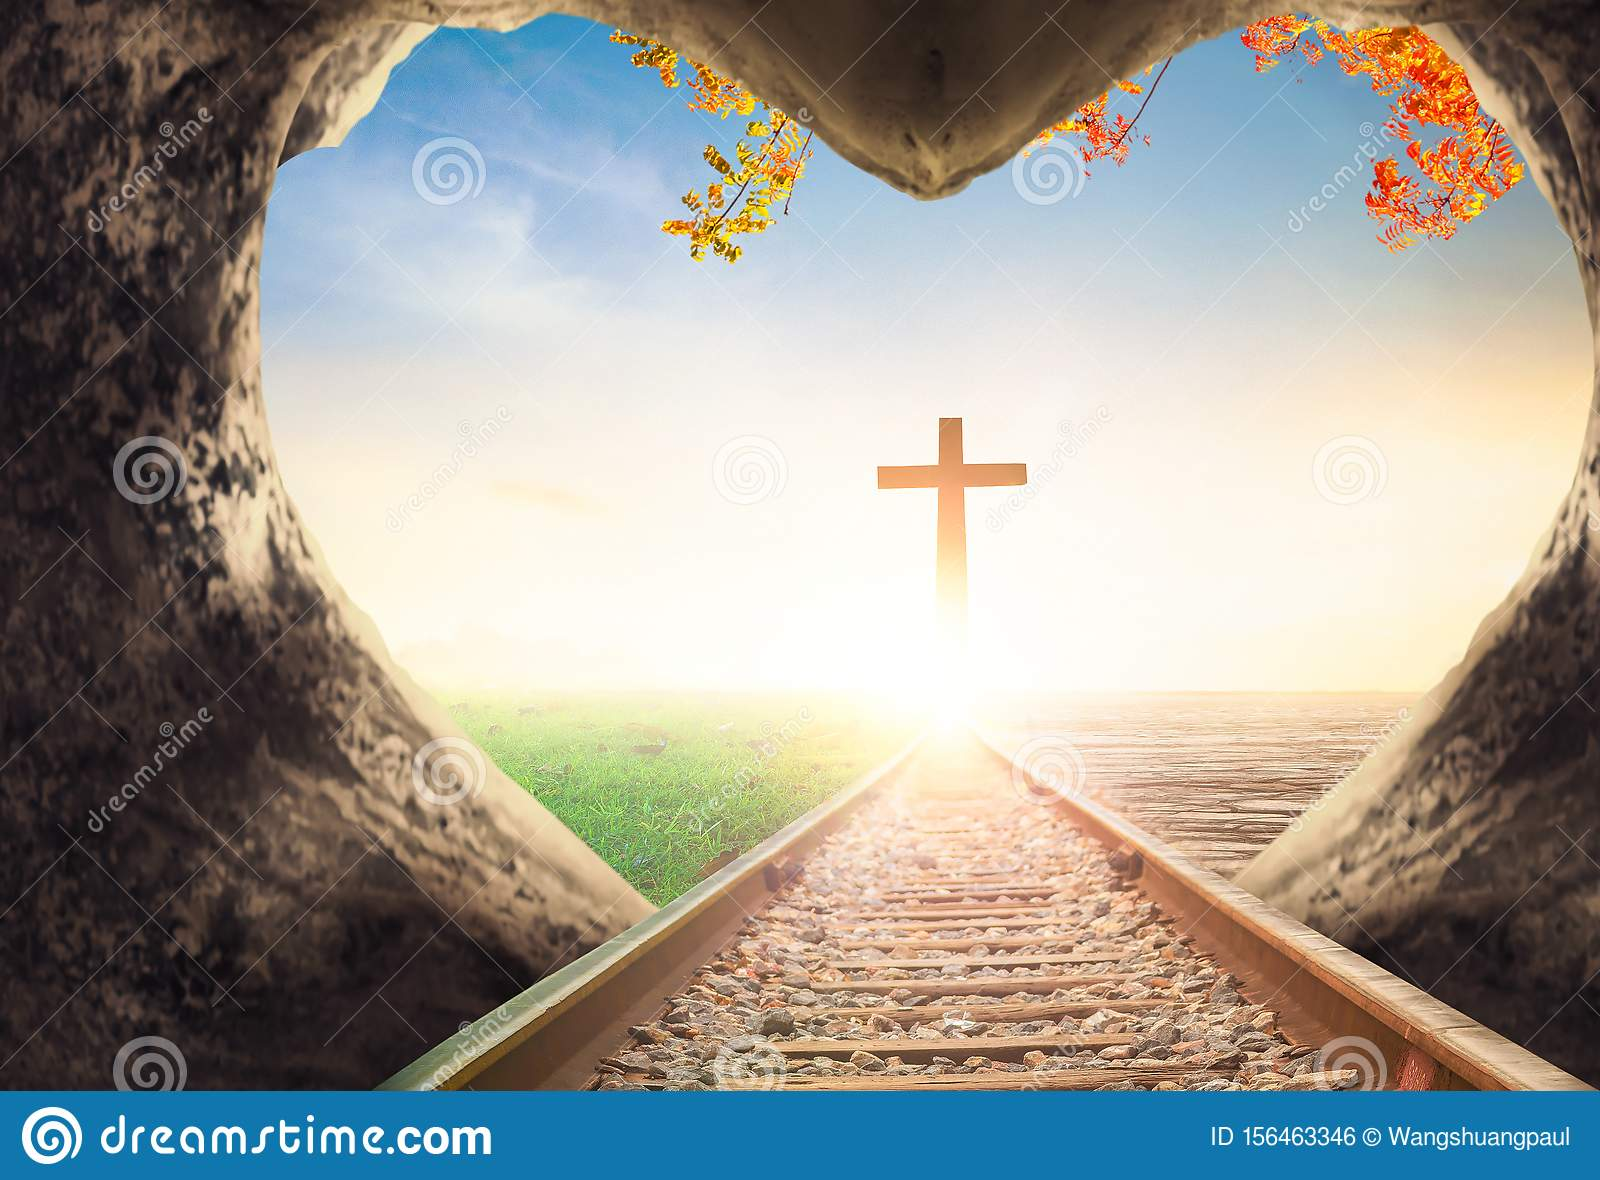 easter concept jesus christ empty grave on the cross background stock photo image of christ death 156463346 https www dreamstime com earth day concept hands holding globe tree over blurred nature background easter jesus christ empty grave cross image156463346